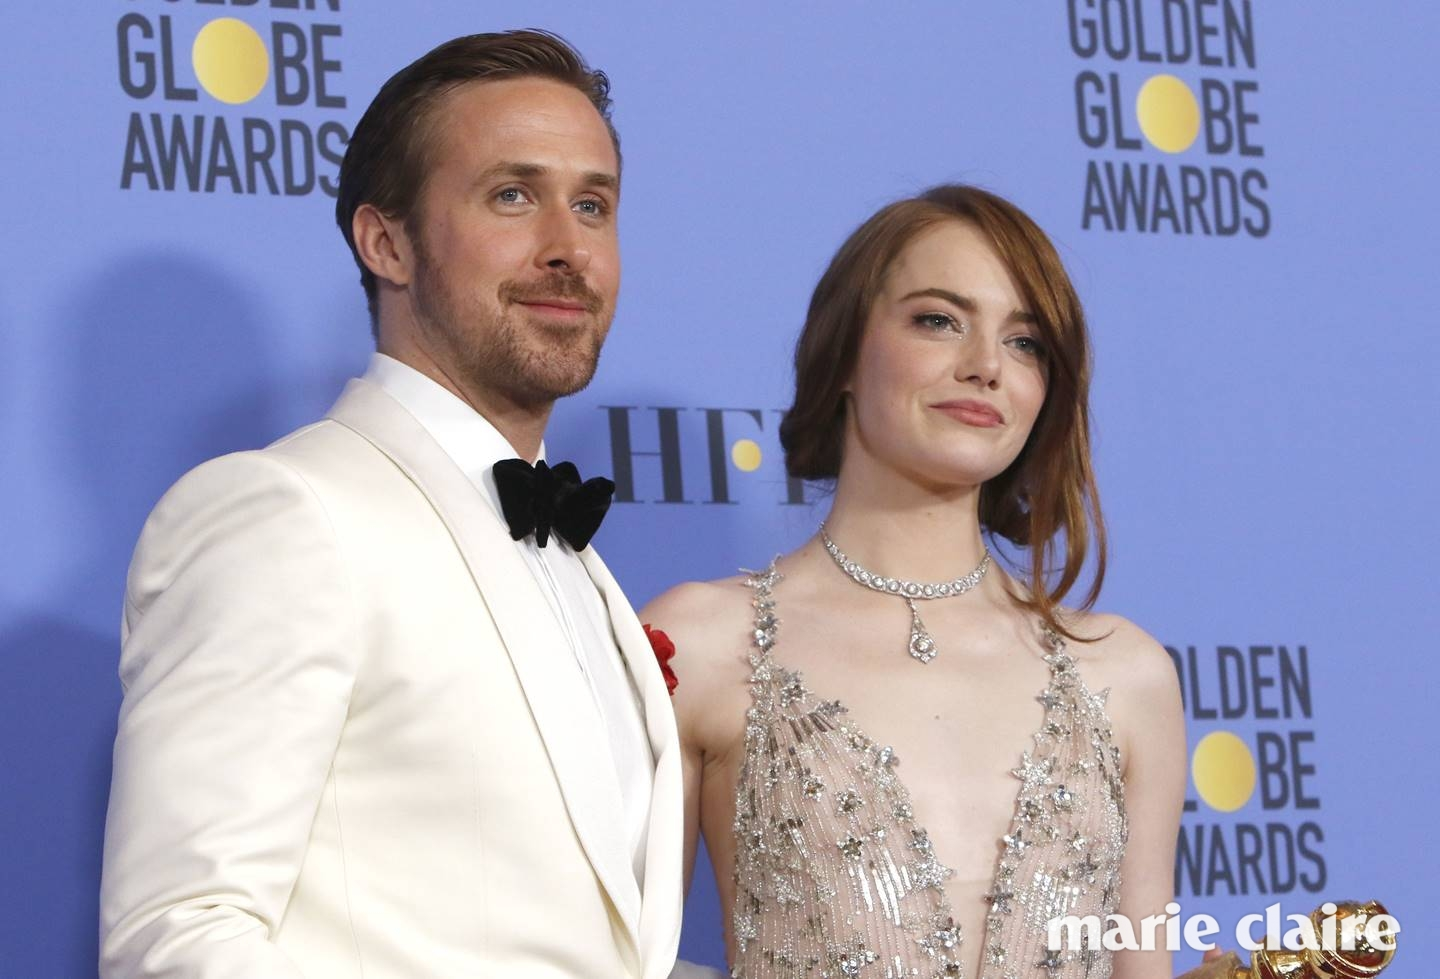 74th Golden Globe Awards - Press Room Featuring: Ryan Gosling and Emma Stone Where: Los Angeles, California, United States When: 09 Jan 2017 Credit: WENN.com **Not available for publication in Germany**